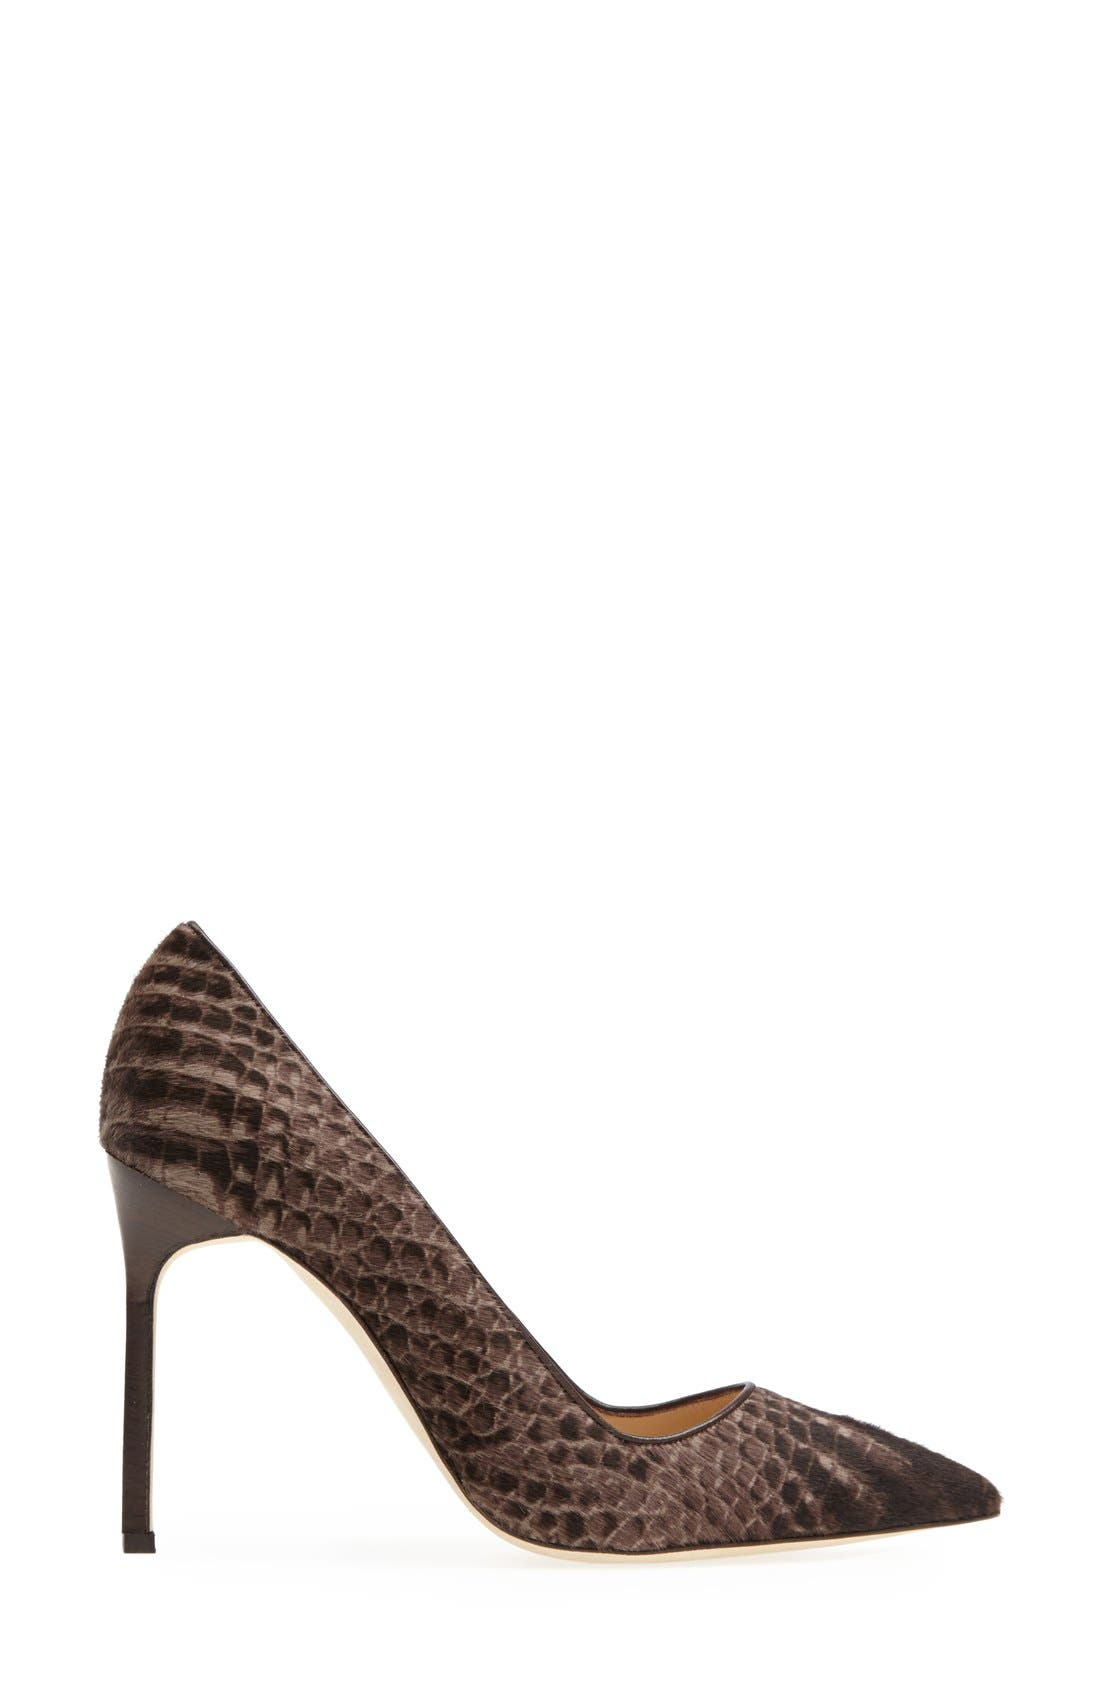 Alternate Image 4  - Manolo Blahnik 'BB' Calf Hair Pump (Women)